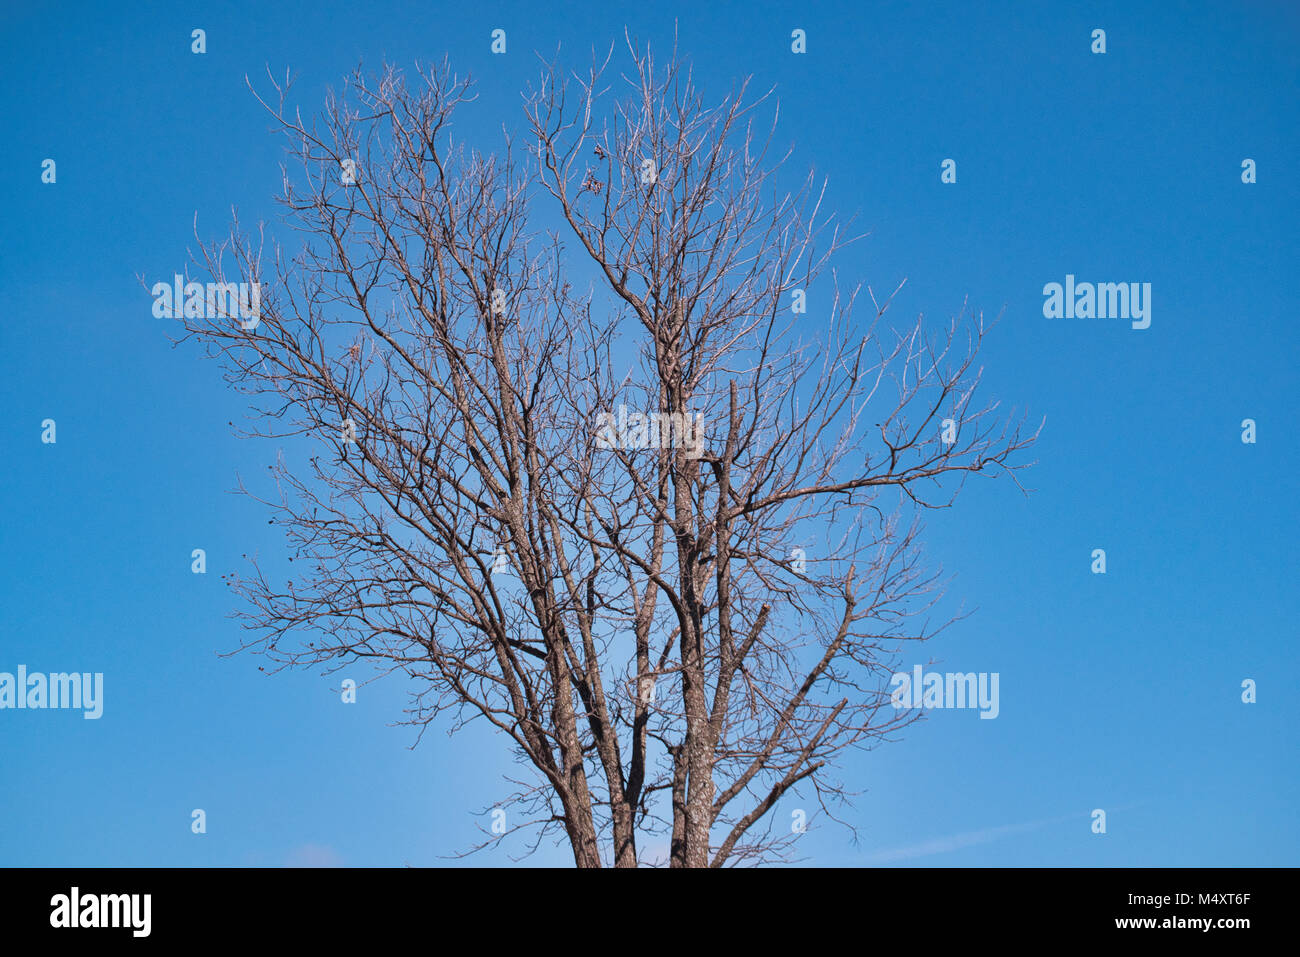 Bare tree, slightly silhouetted by the bright blue sky. Mid Oklahoma day. - Stock Image